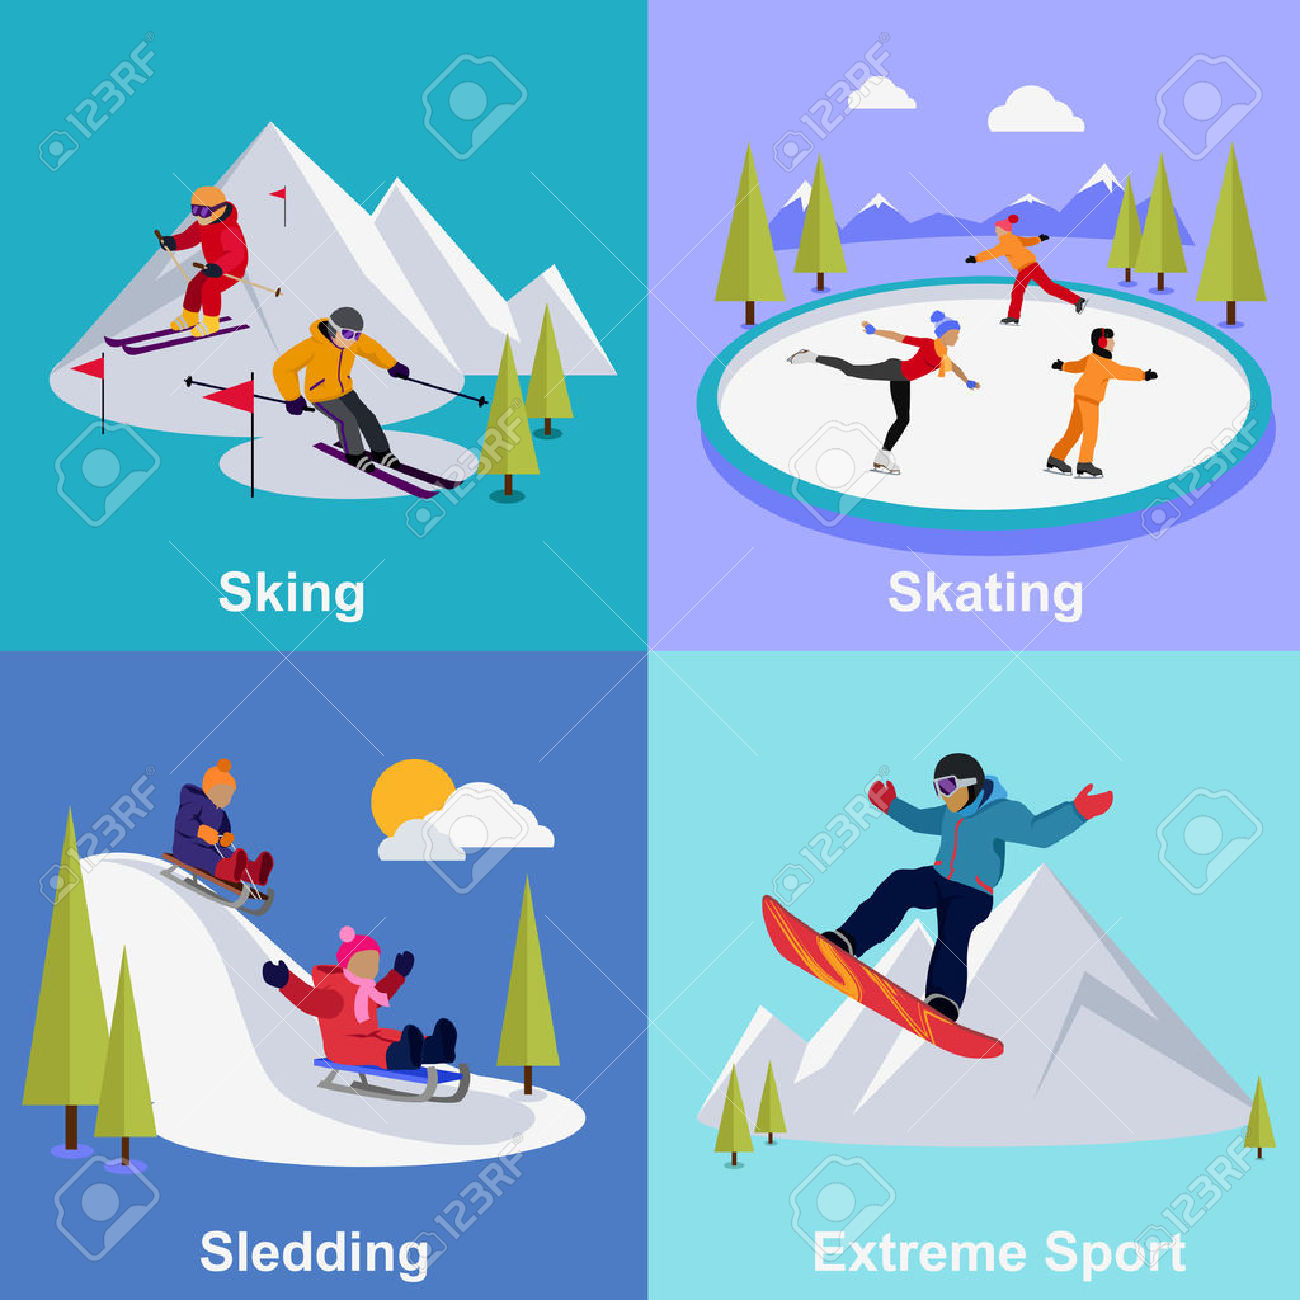 5,907 Slopes Stock Vector Illustration And Royalty Free Slopes Clipart.